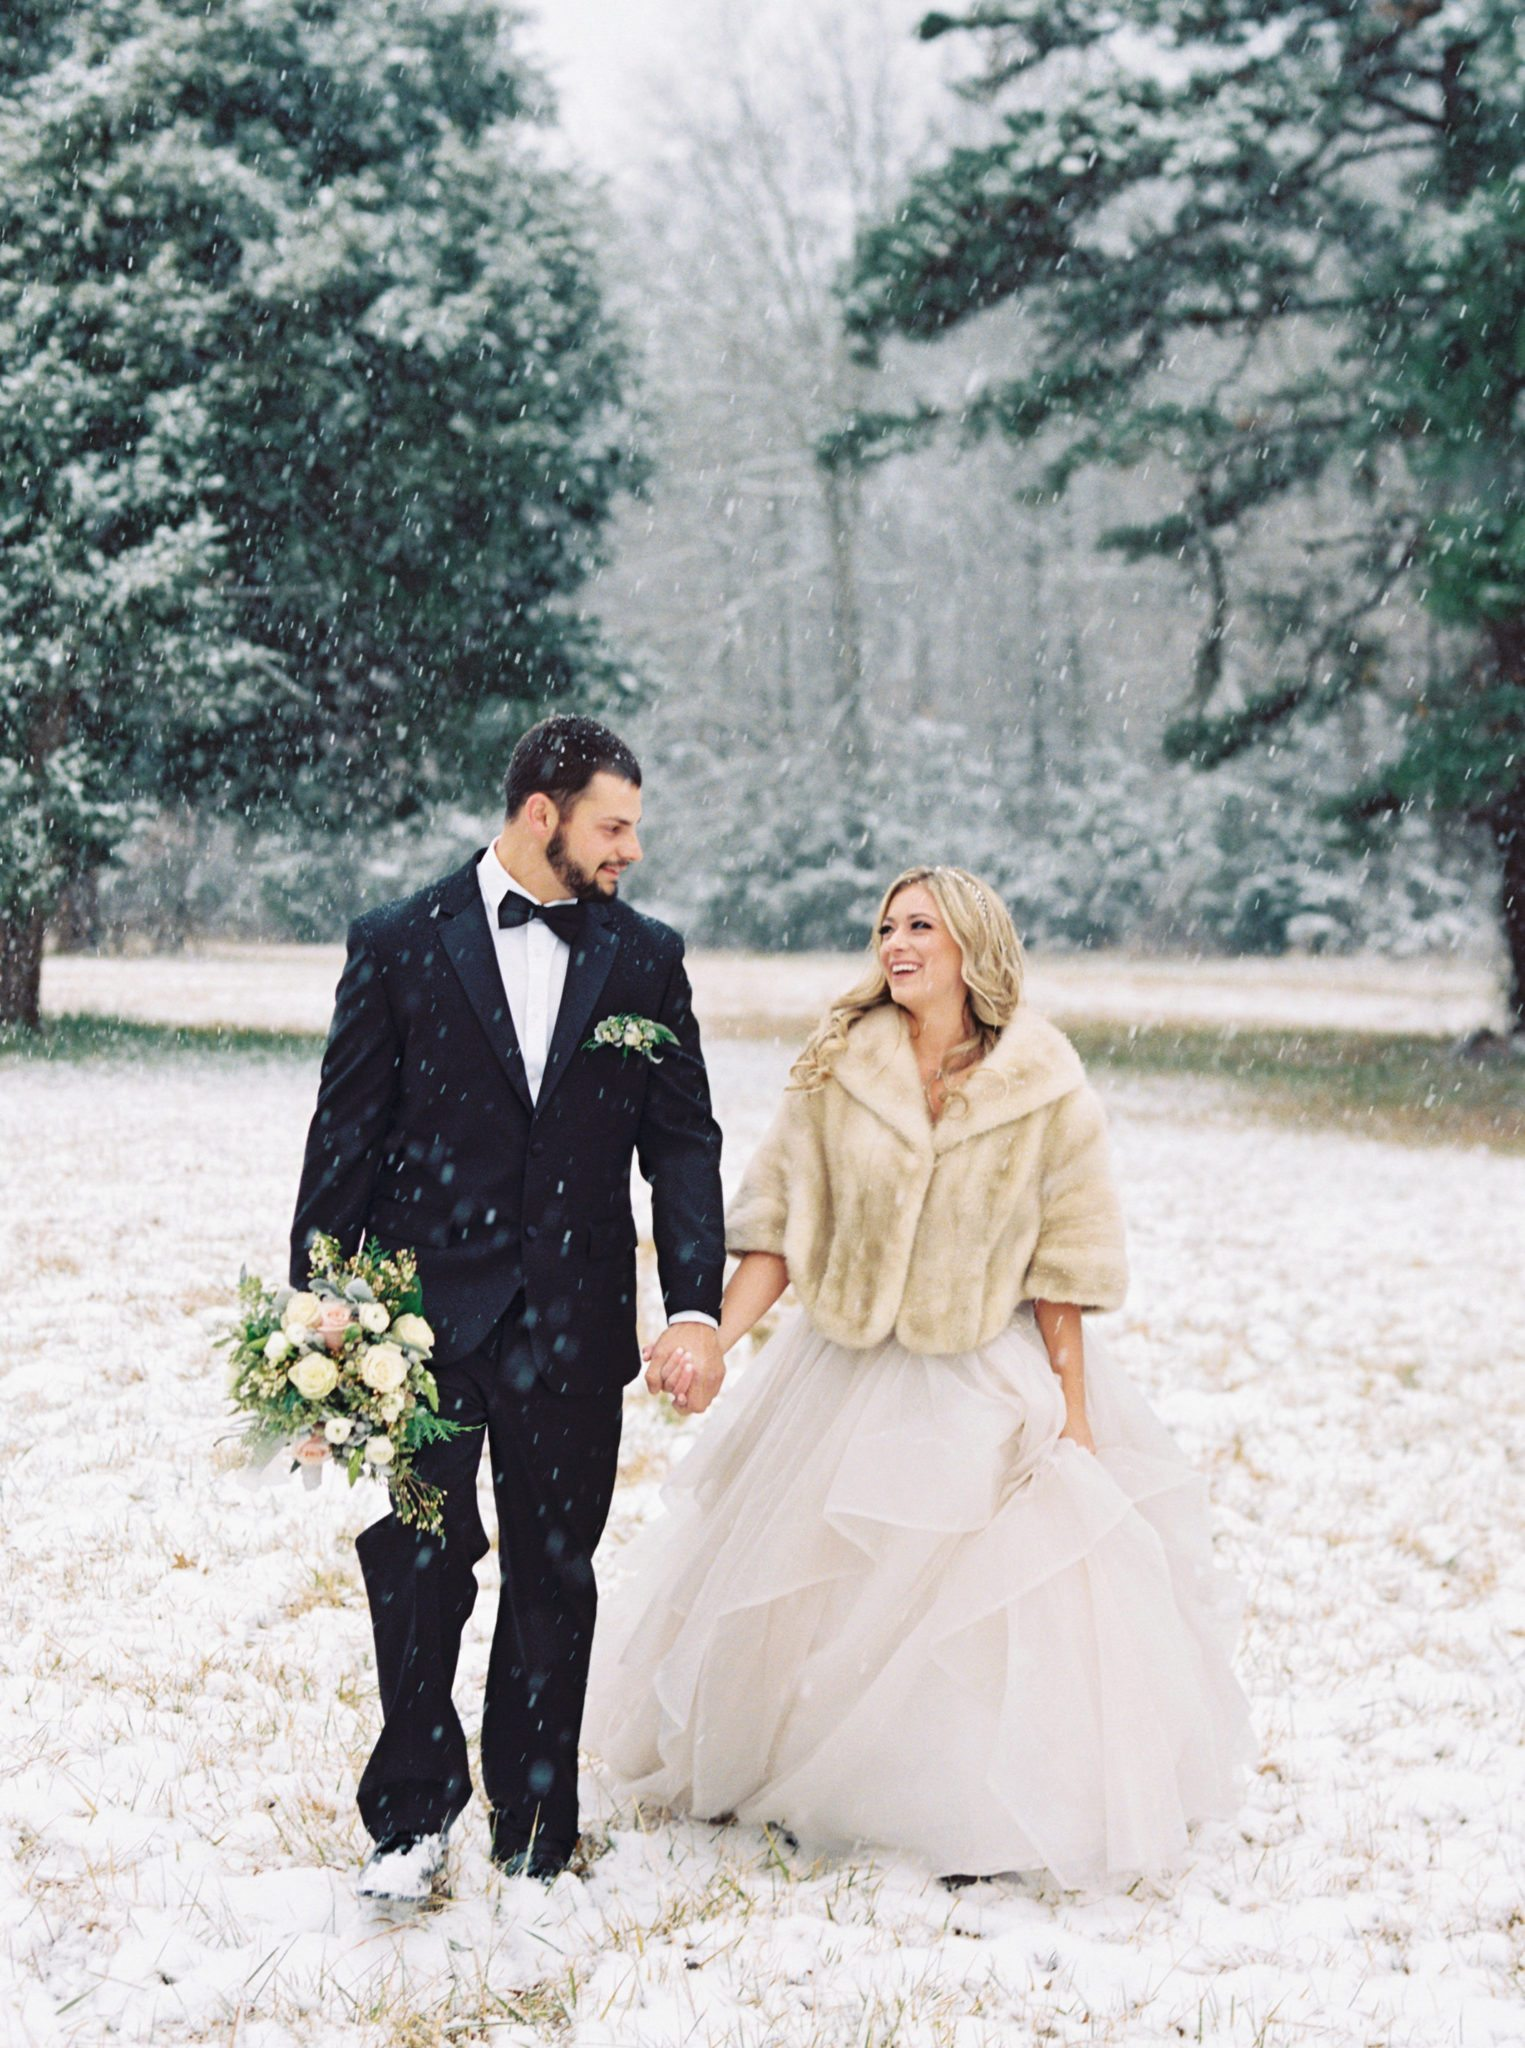 KimStockwellAshleyandMattMoraisVIneyardWedding178 Winter Weddings - A Snow Fairy Tale